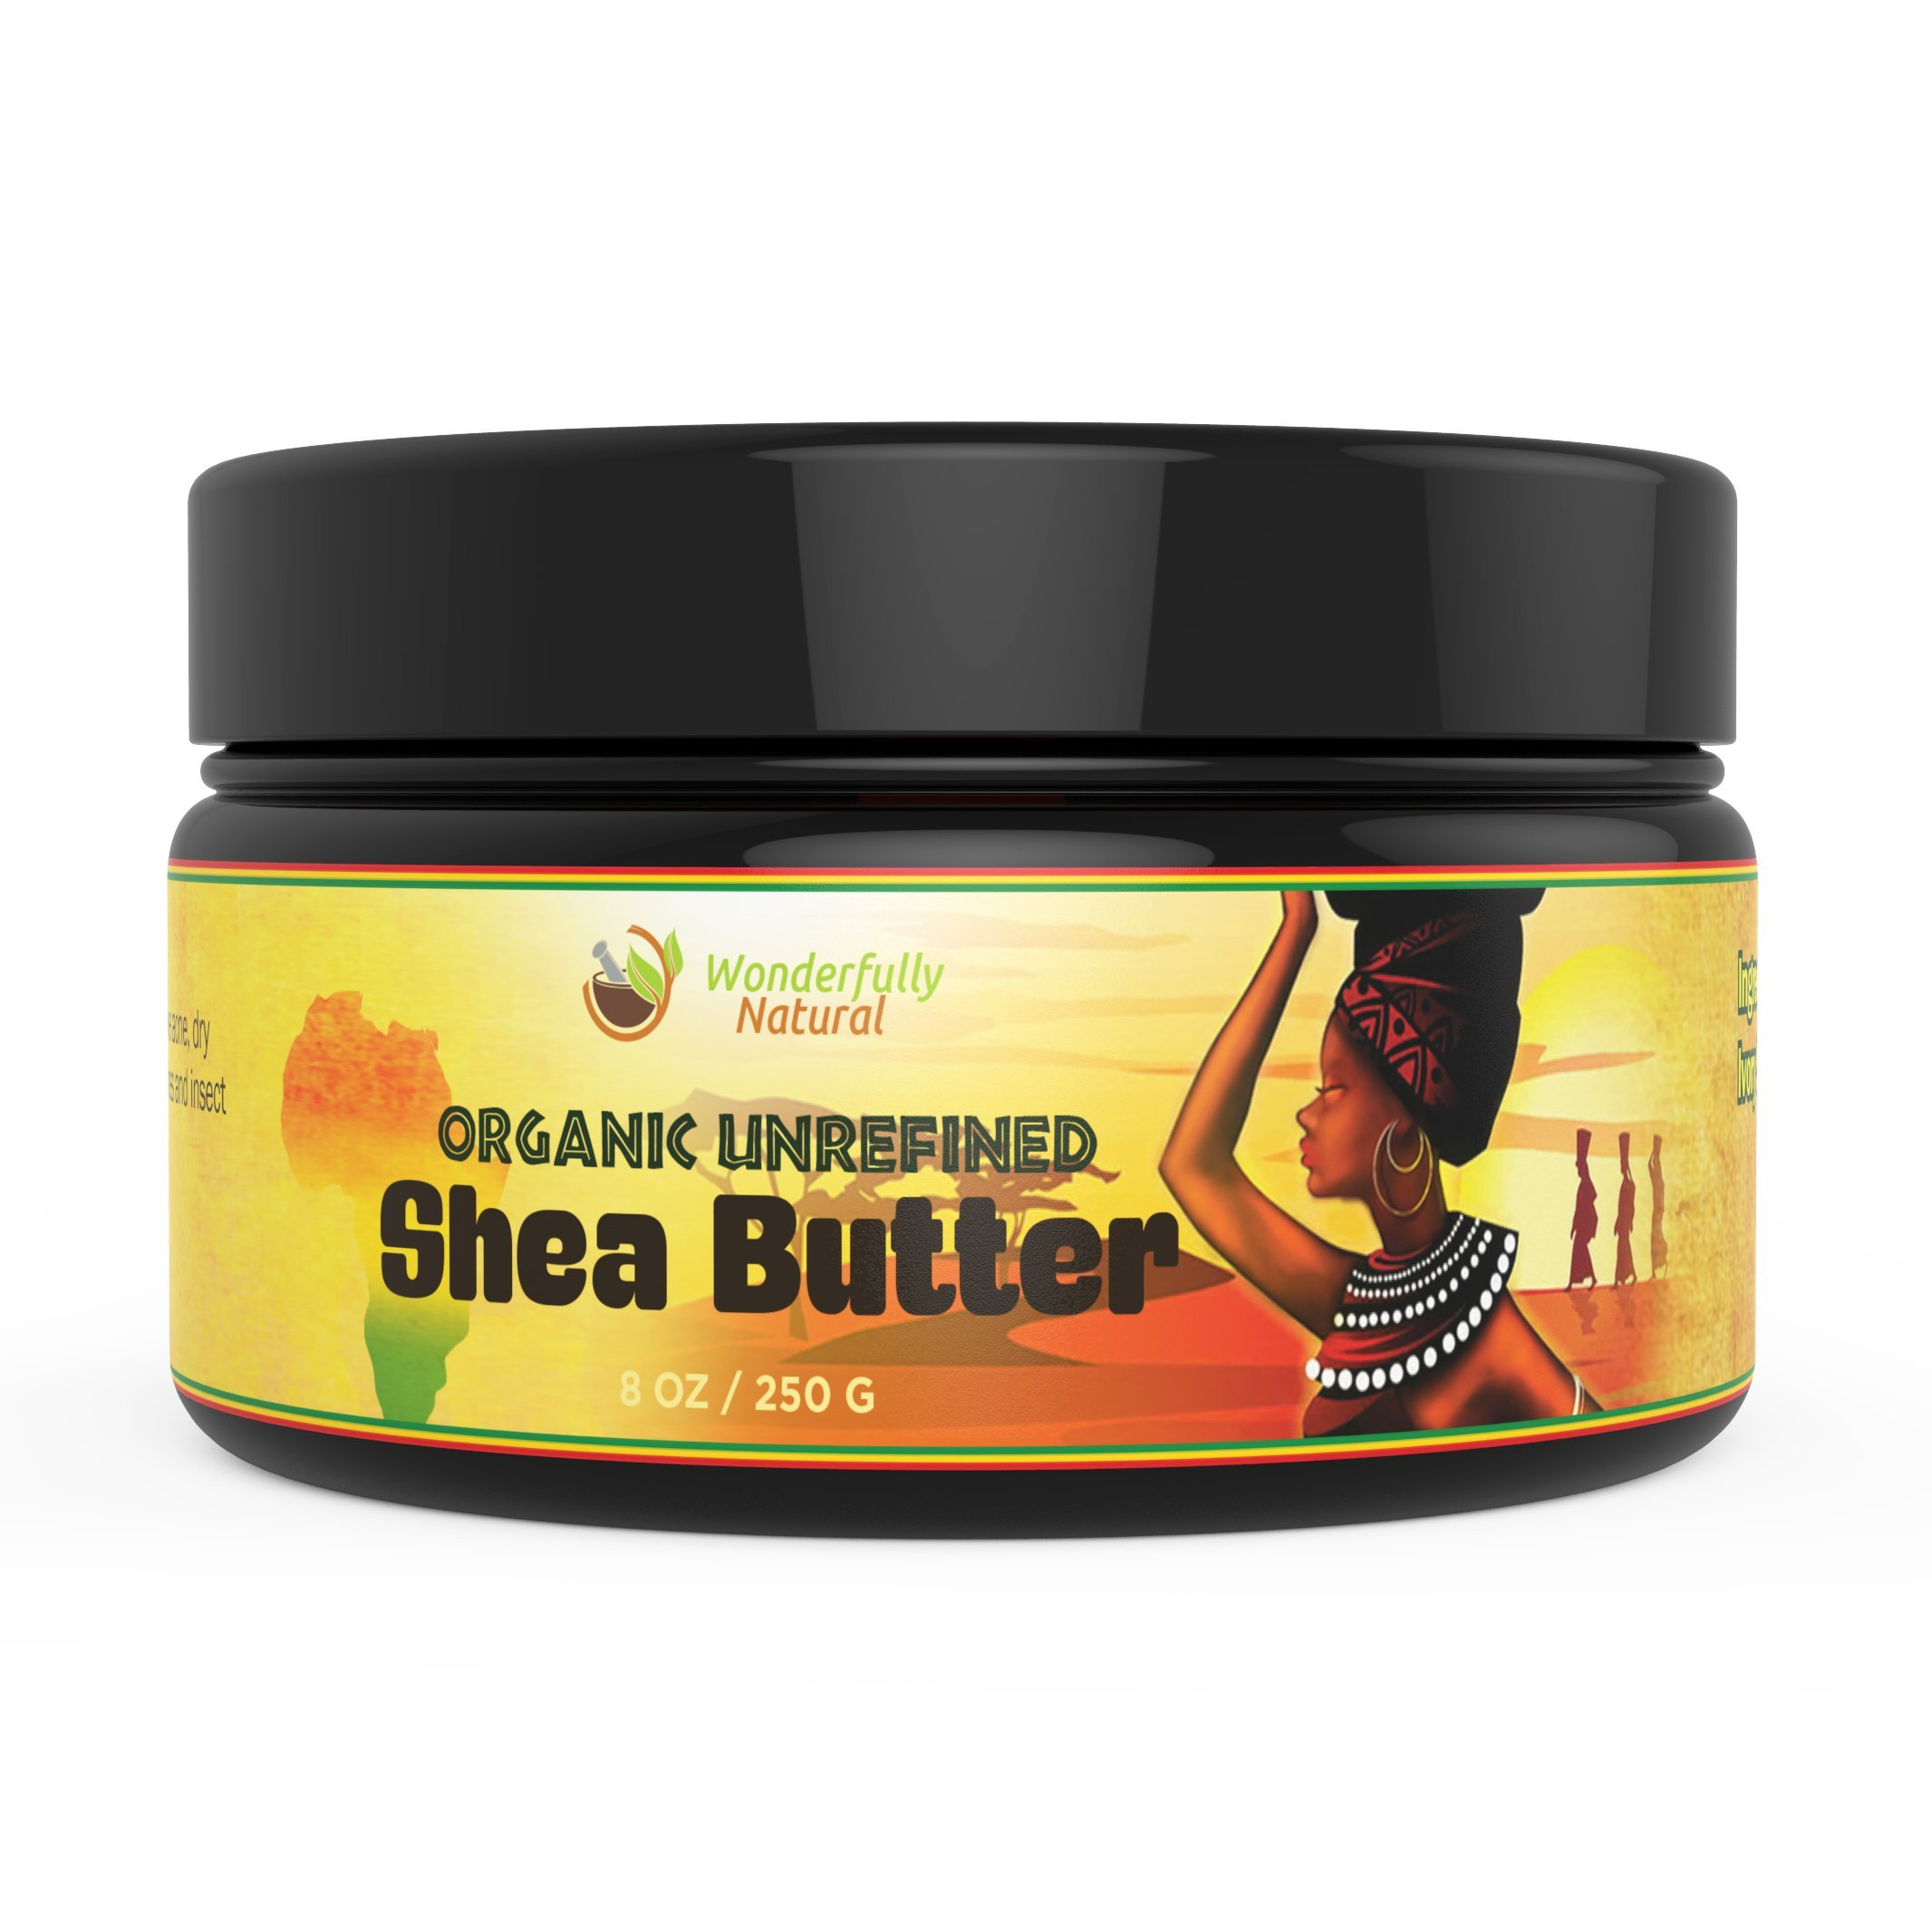 Unrefined Shea Butter - African Organic Ivory & Raw – Use Alone or In DIY Cream, Soap & More! - Vitamins Rich, Natural Healing for Eczema, Stretch Mark, Moisturizing Dry Skin & Hair Care 8 OZ